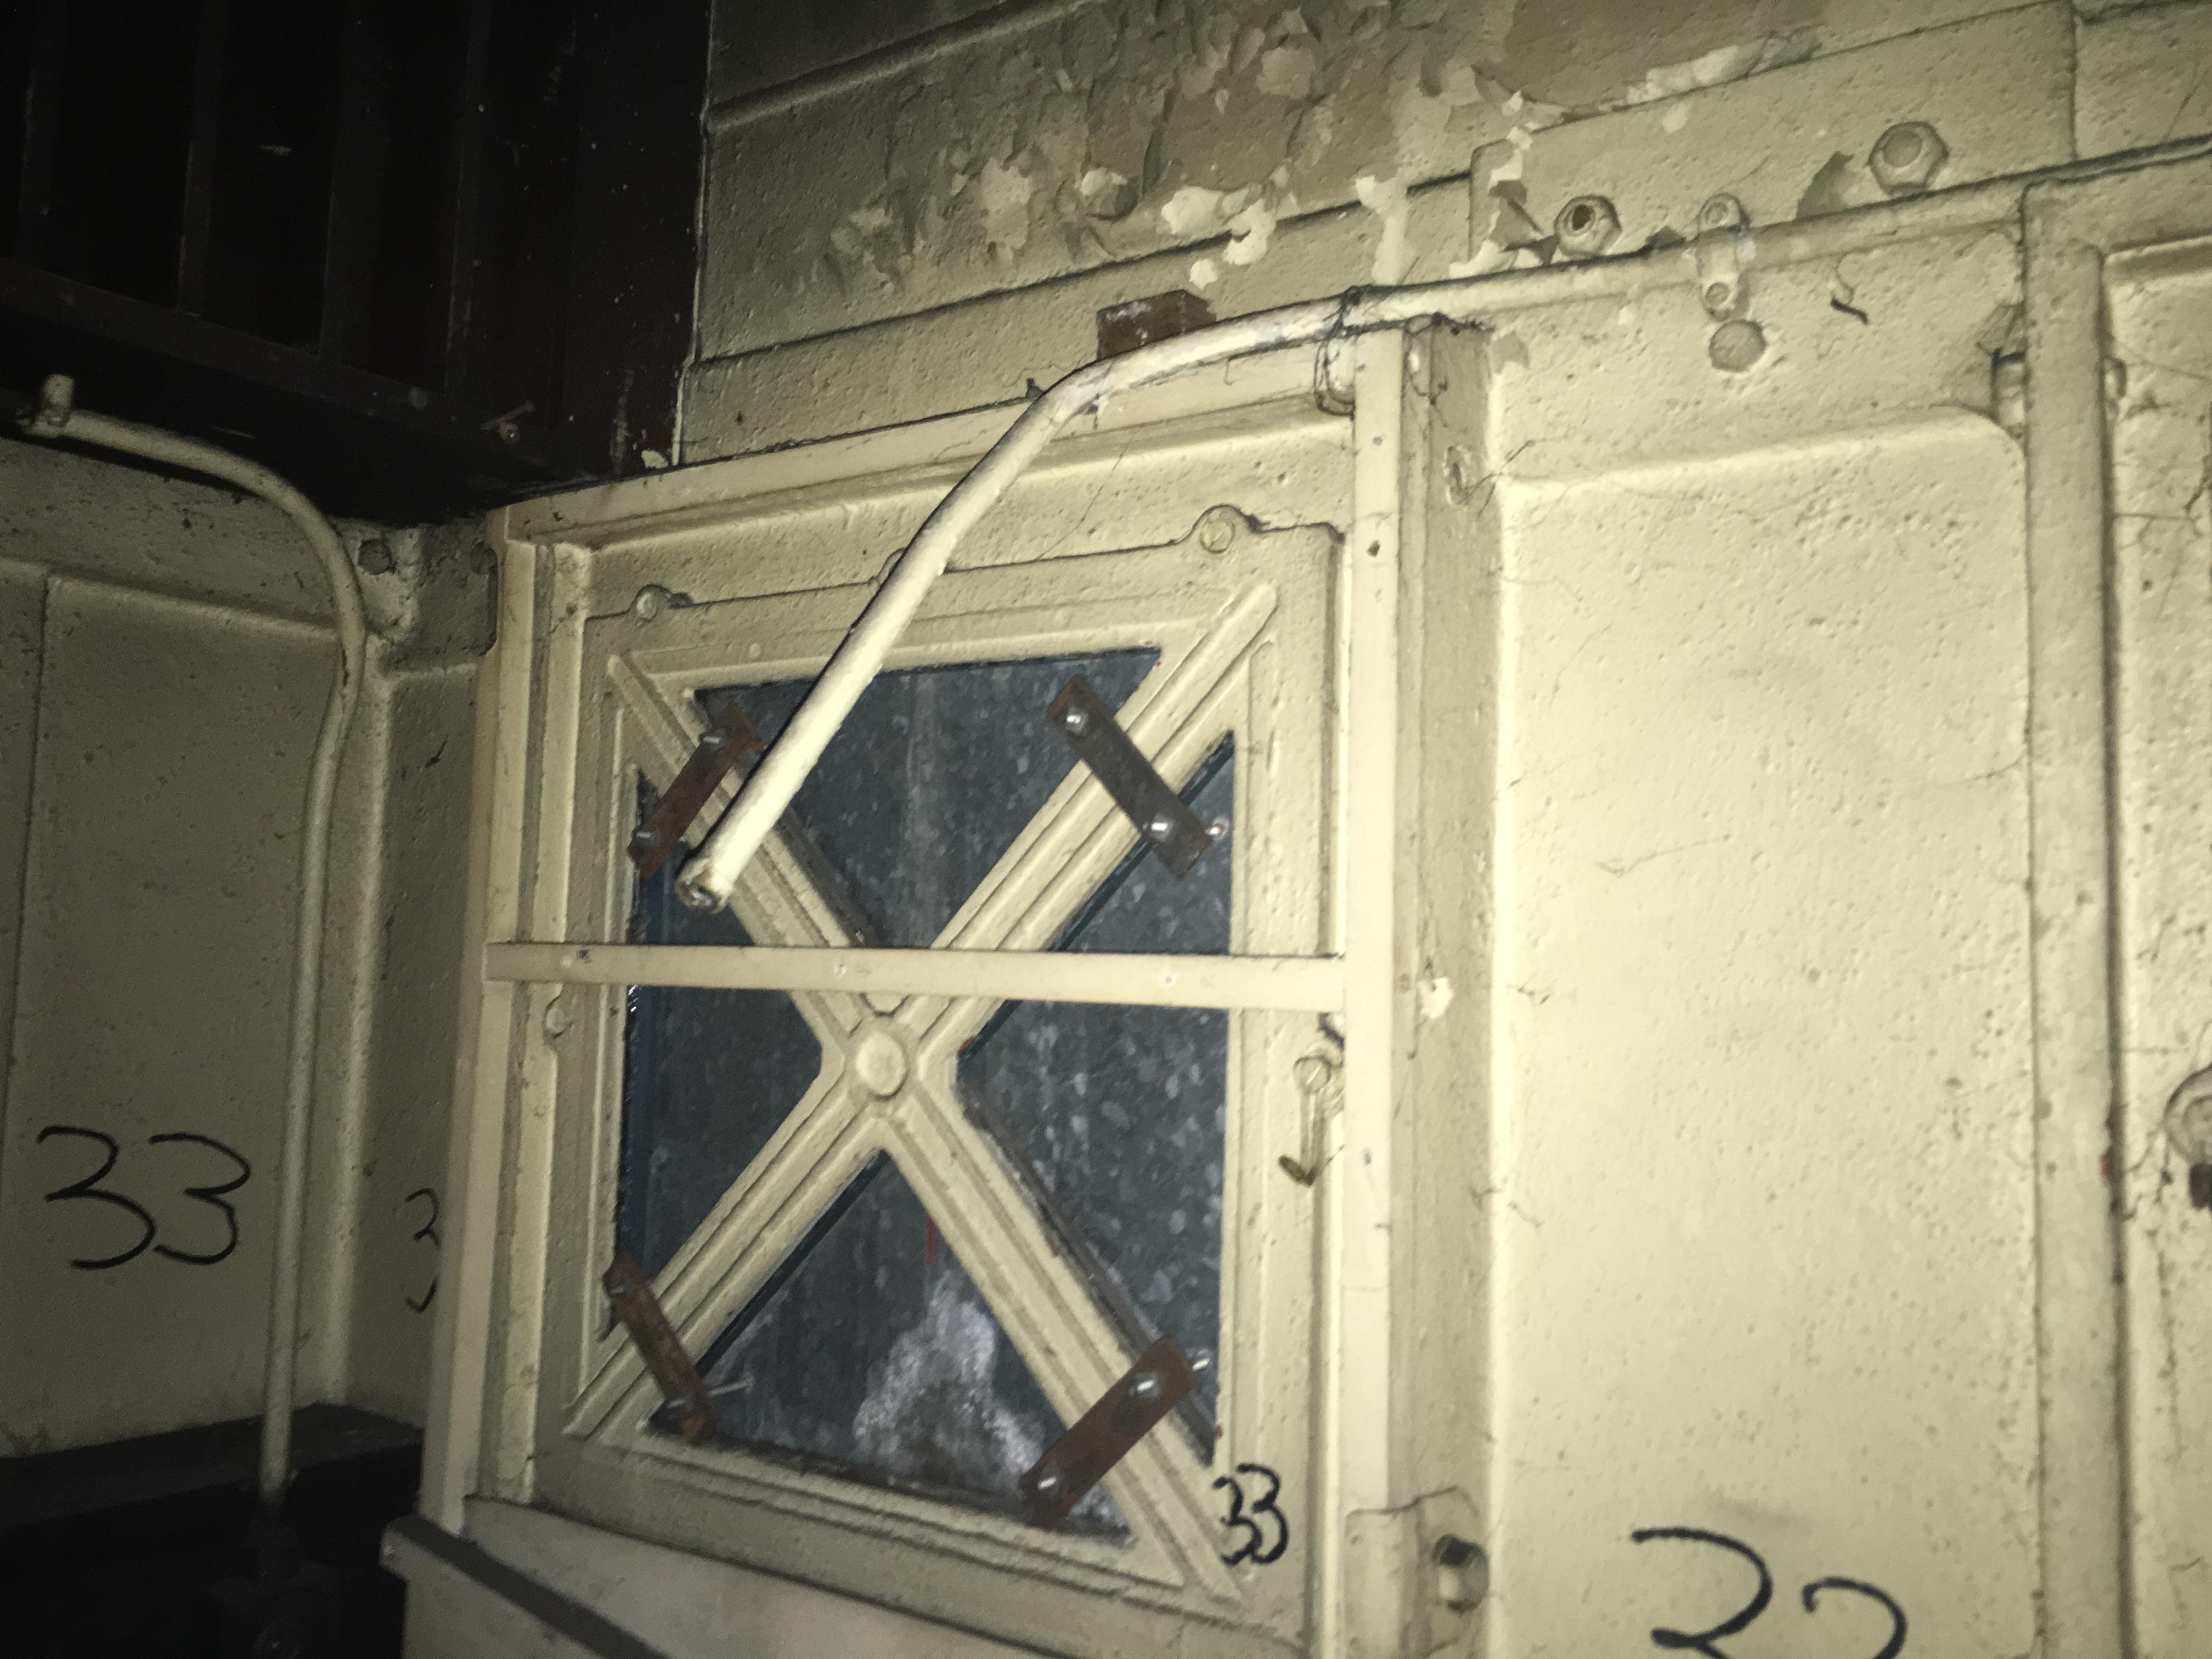 Another window covered by a plate